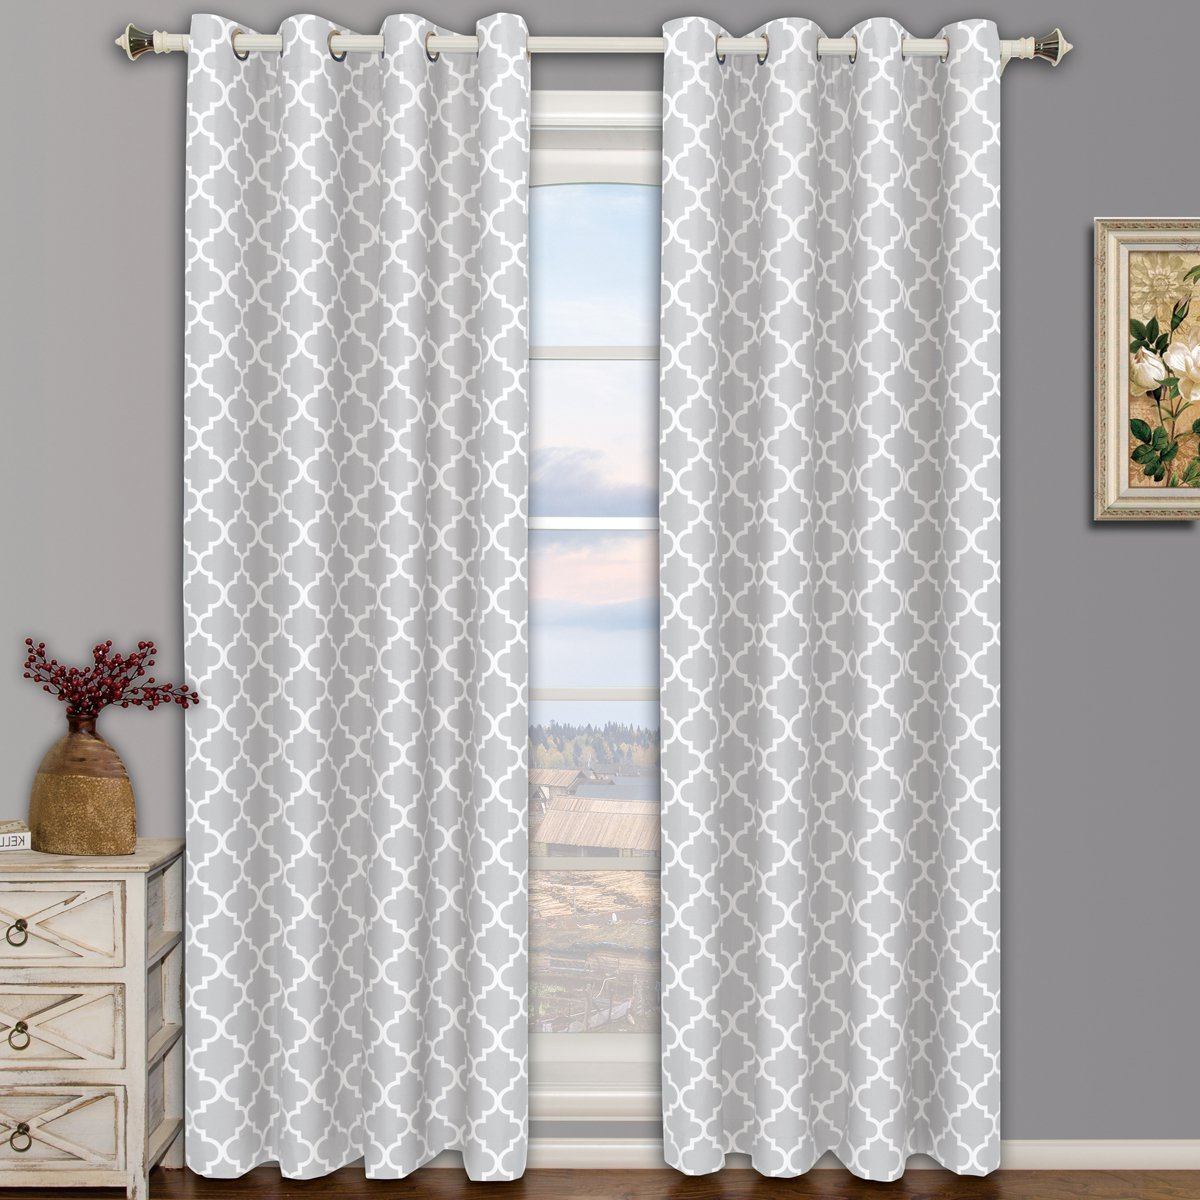 """Most Popular Grommet Top Thermal Insulated Blackout Curtain Panel Pairs Inside Pair Of Two Top Grommet Meridian Blackout Thermal Insulated Curtain Panels, Triple Pass Foam Back Layer, Silver, Set Of Two 52""""108"""" Panels (104"""" (Gallery 15 of 20)"""